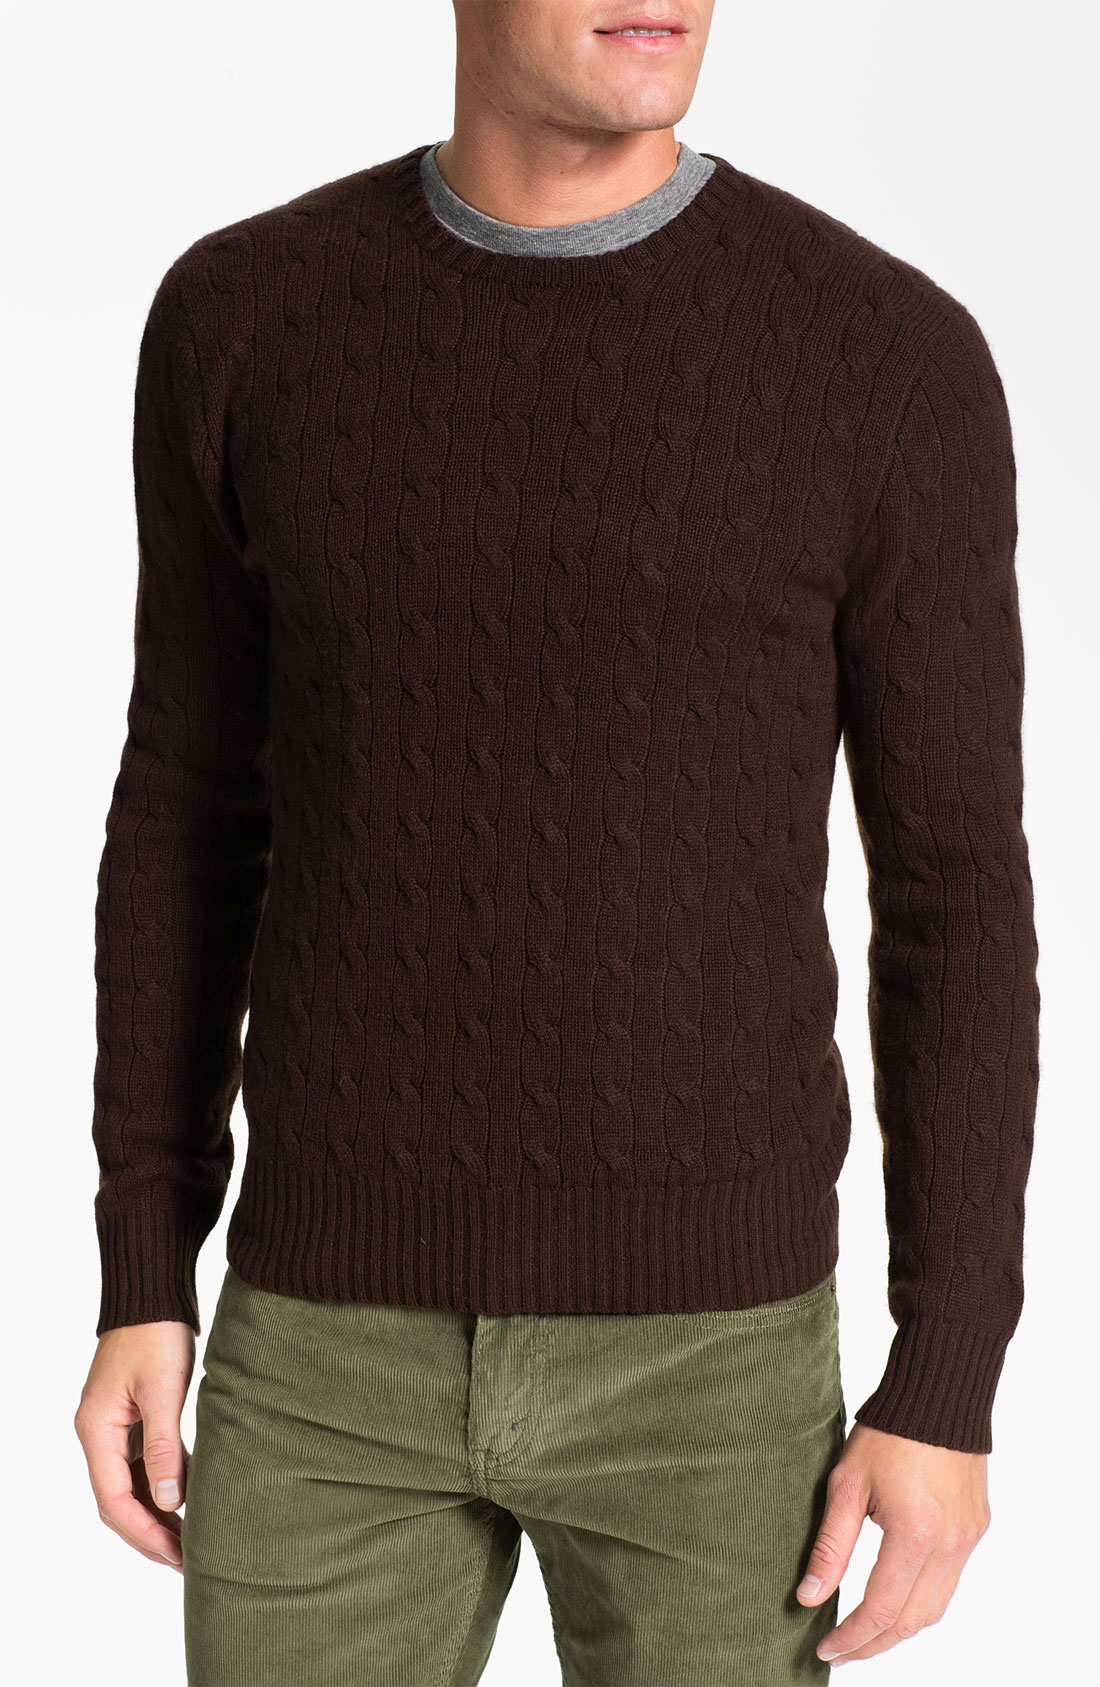 Brown Cashmere Sweater Her Sweater